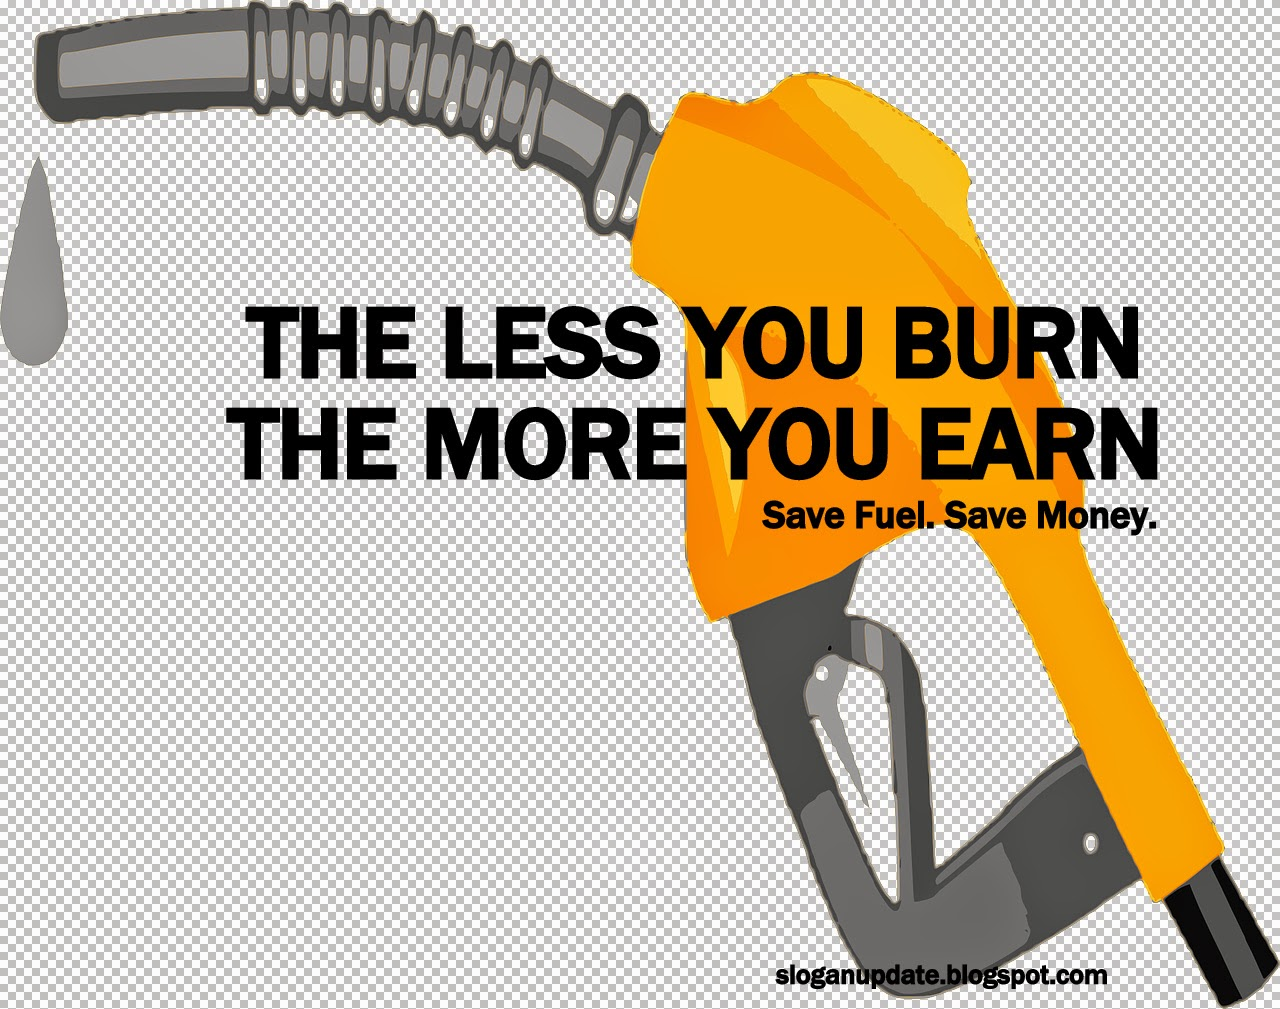 Slogans about save fuel